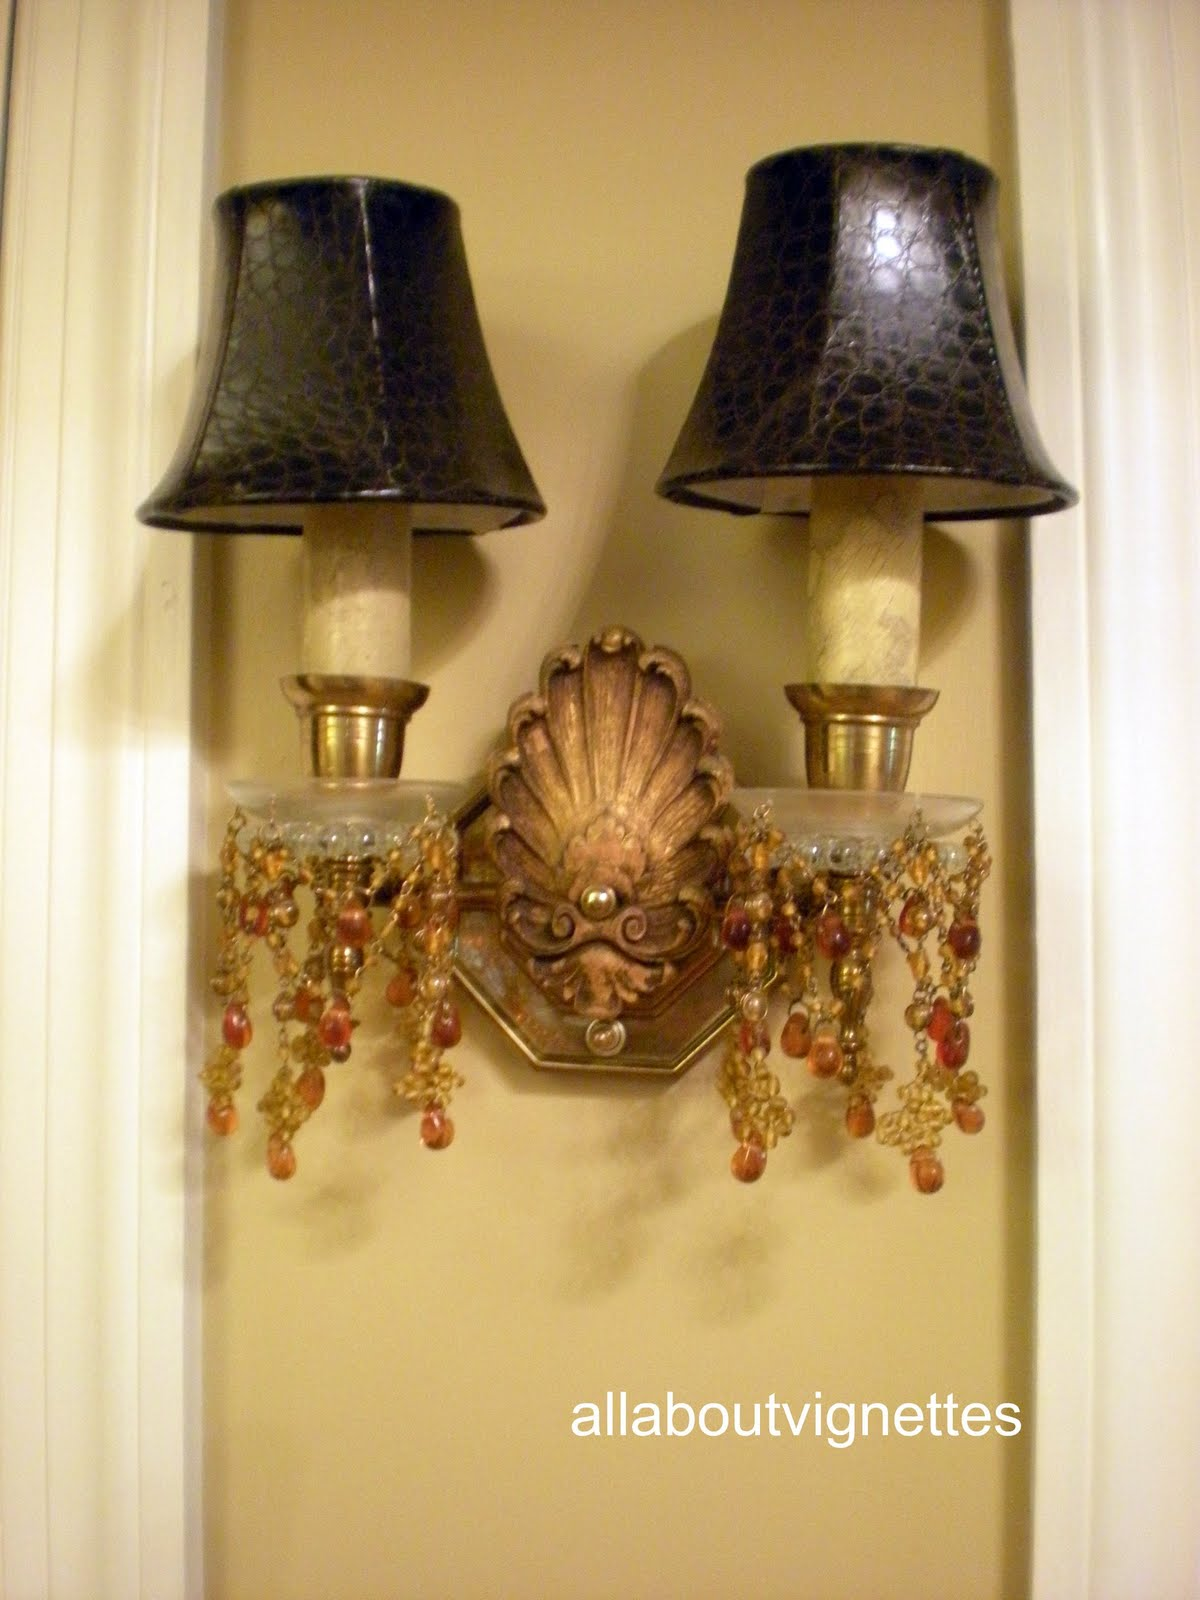 All About Vignettes: Foyer Wall Sconce Change Up